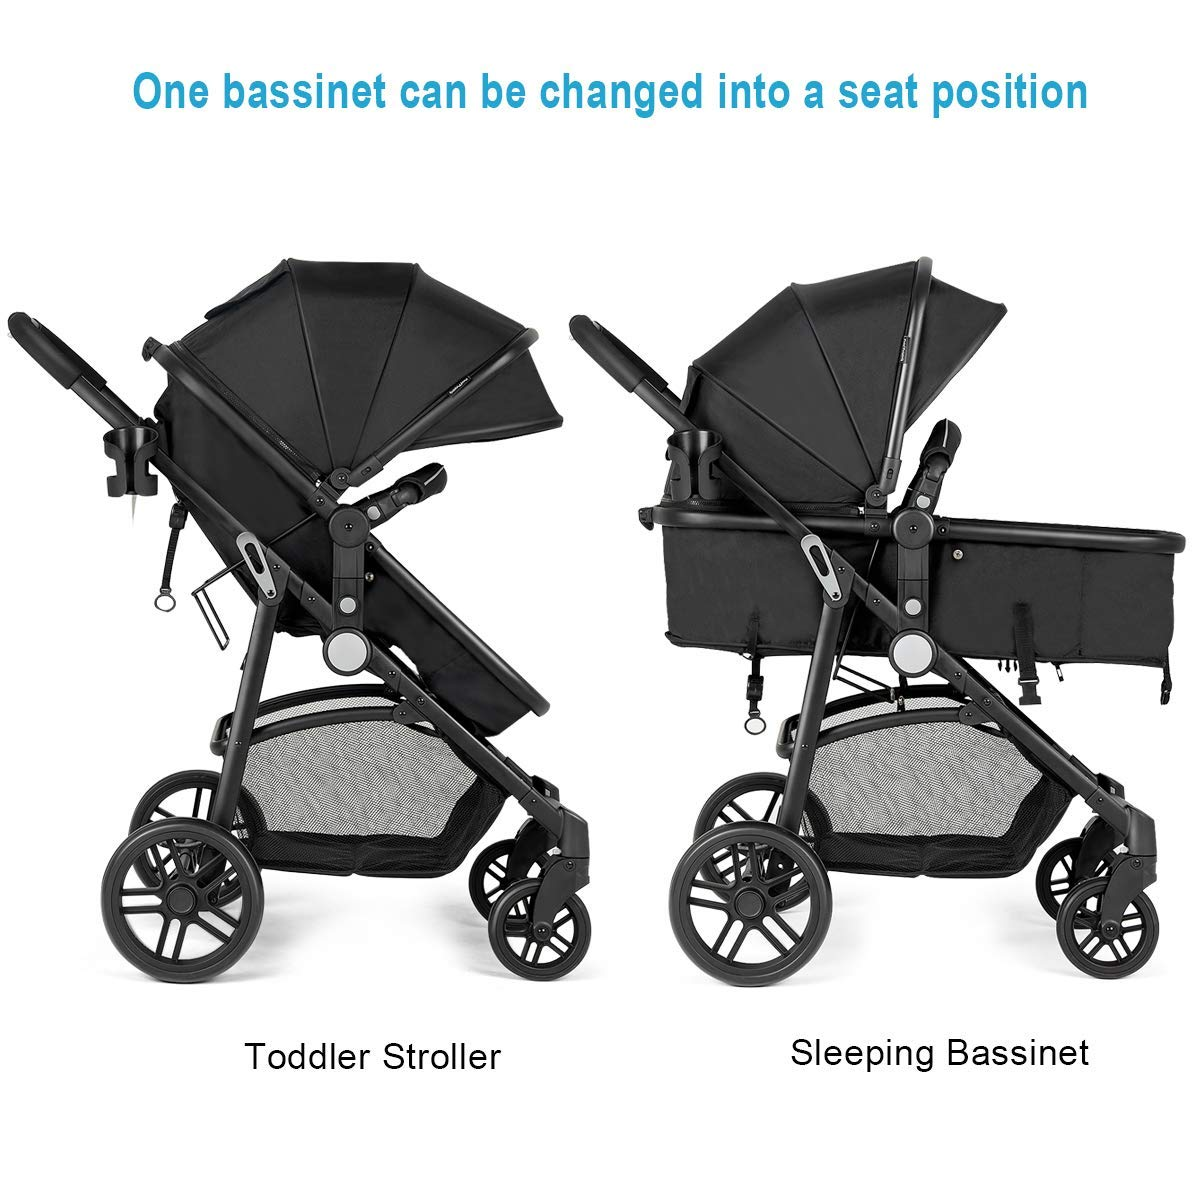 BABY JOY Baby Stroller, 2 in 1 Convertible Carriage Bassinet to Stroller, Pushchair with Foot Cover, Cup Holder, Large Storage Space, Wheels Suspension, 5-Point Harness, Deluxe Black by BABY JOY (Image #2)